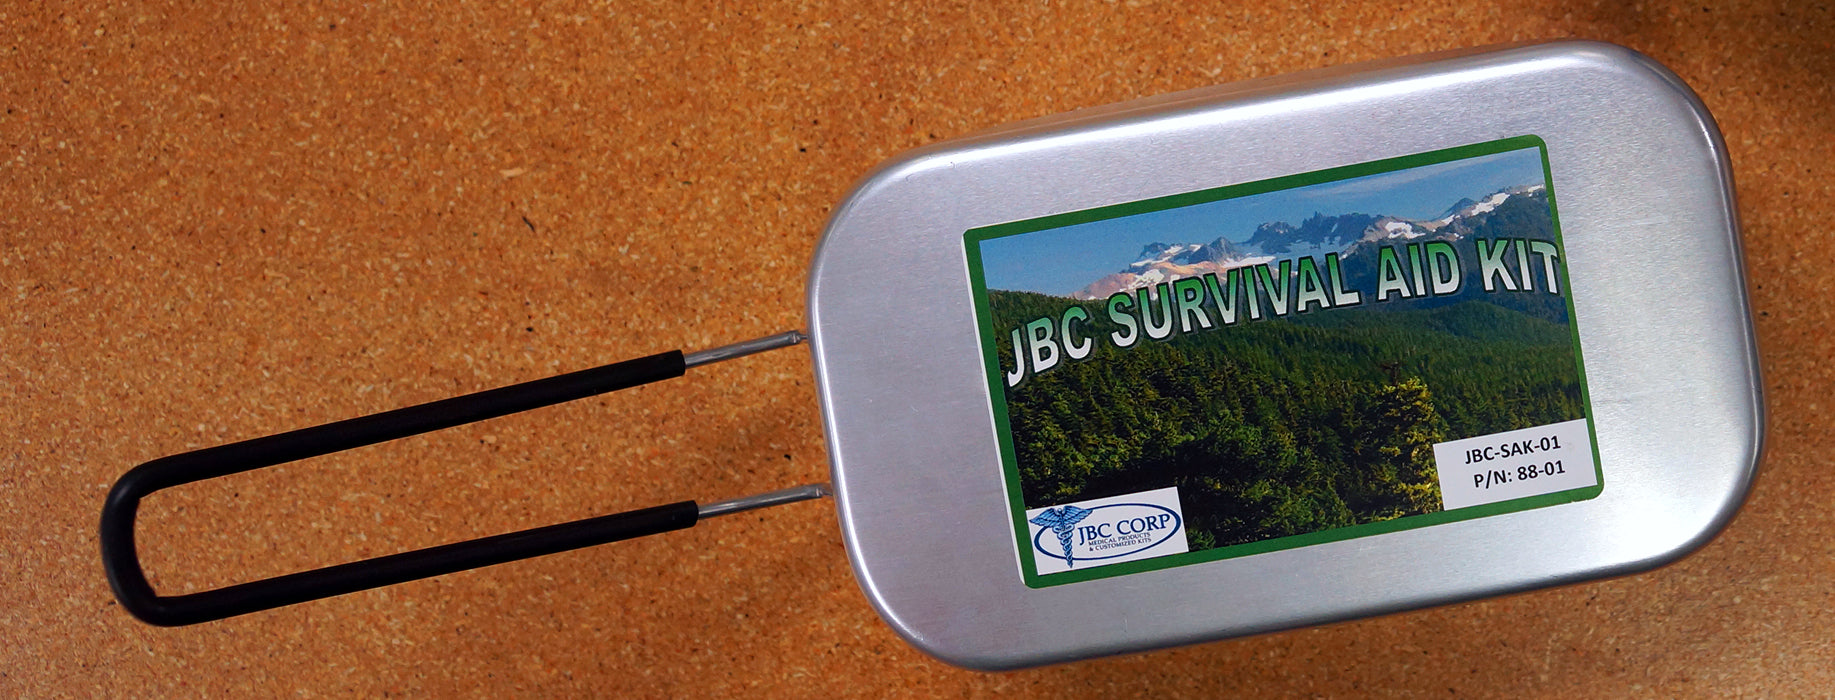 The JBC Survival Aid Tin with the handle extended.